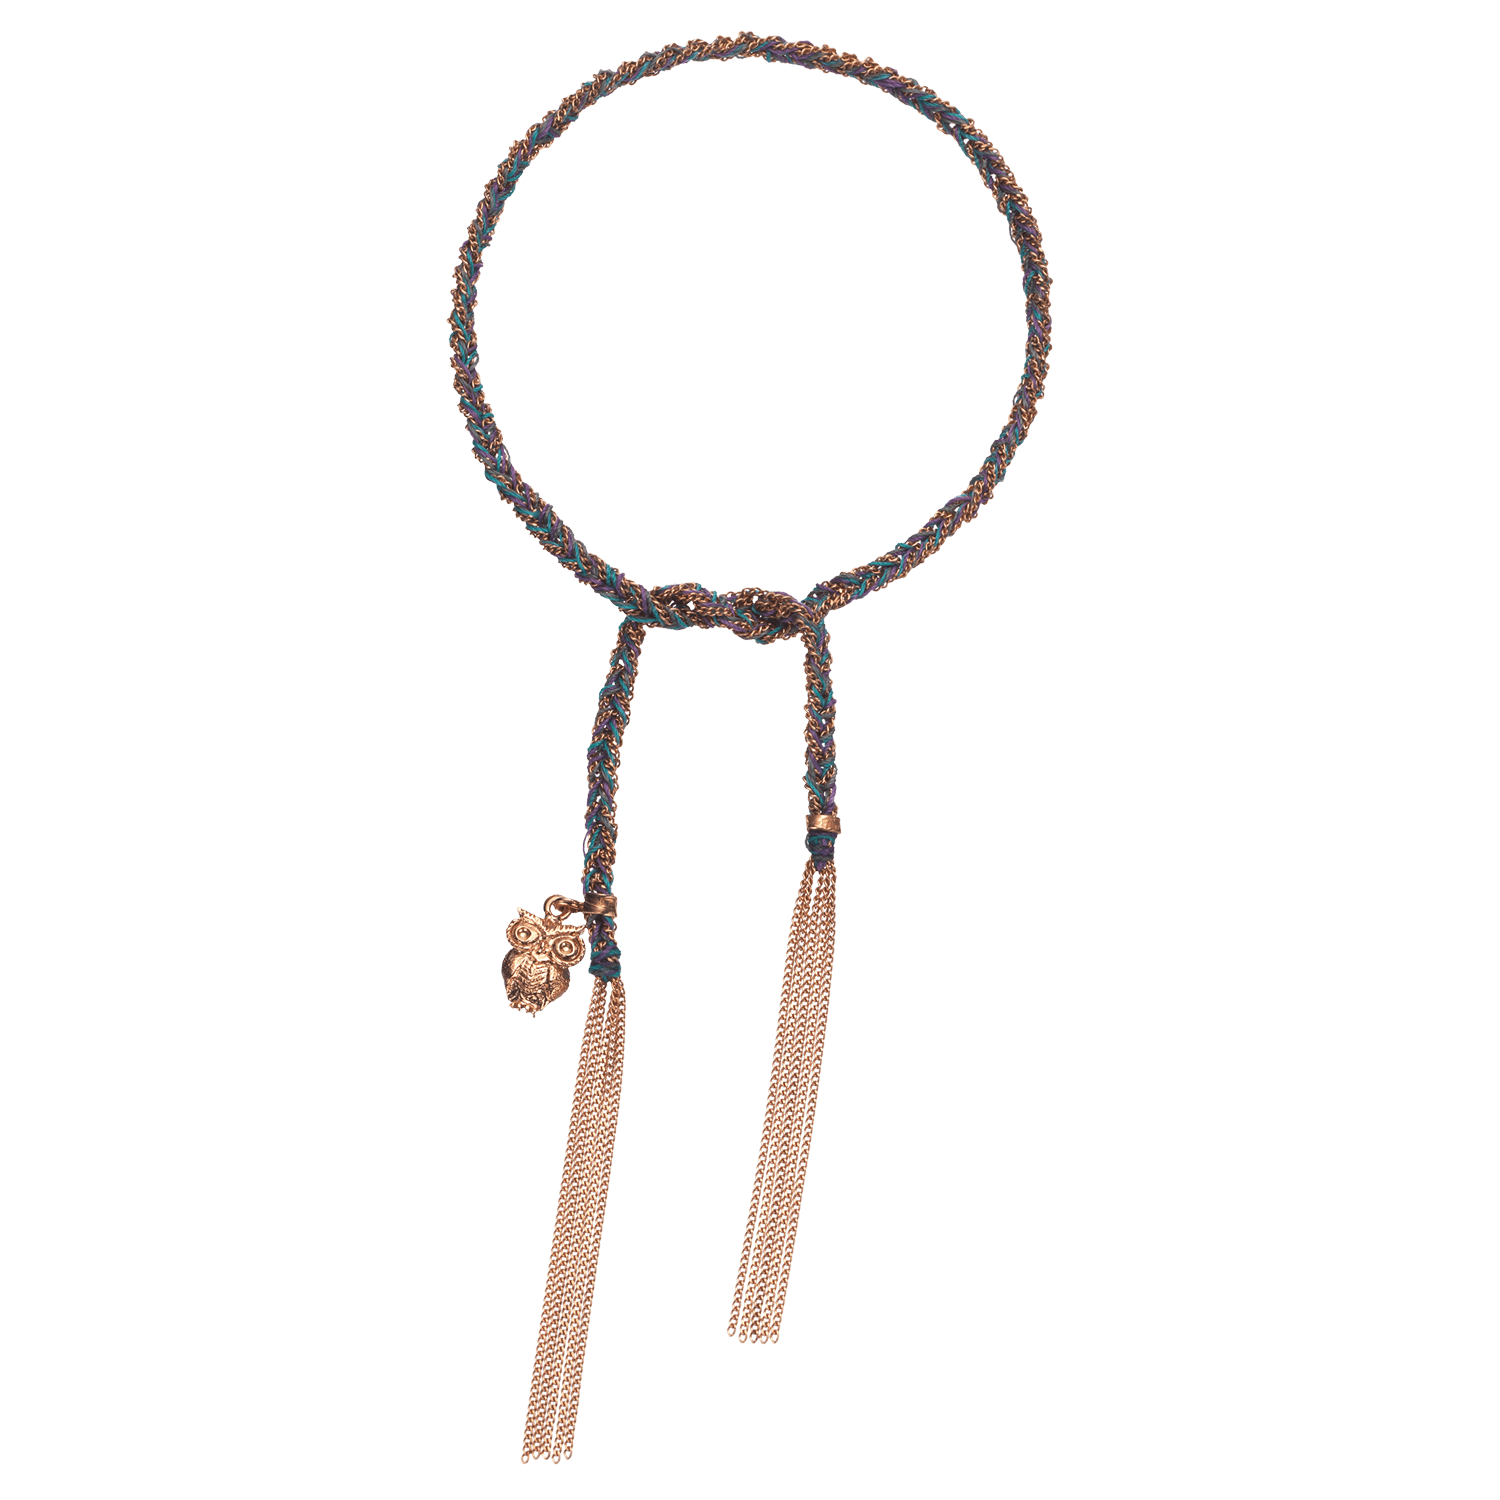 Carolina Bucci Lucky Bracelet with Intuition Charm Pink Gold